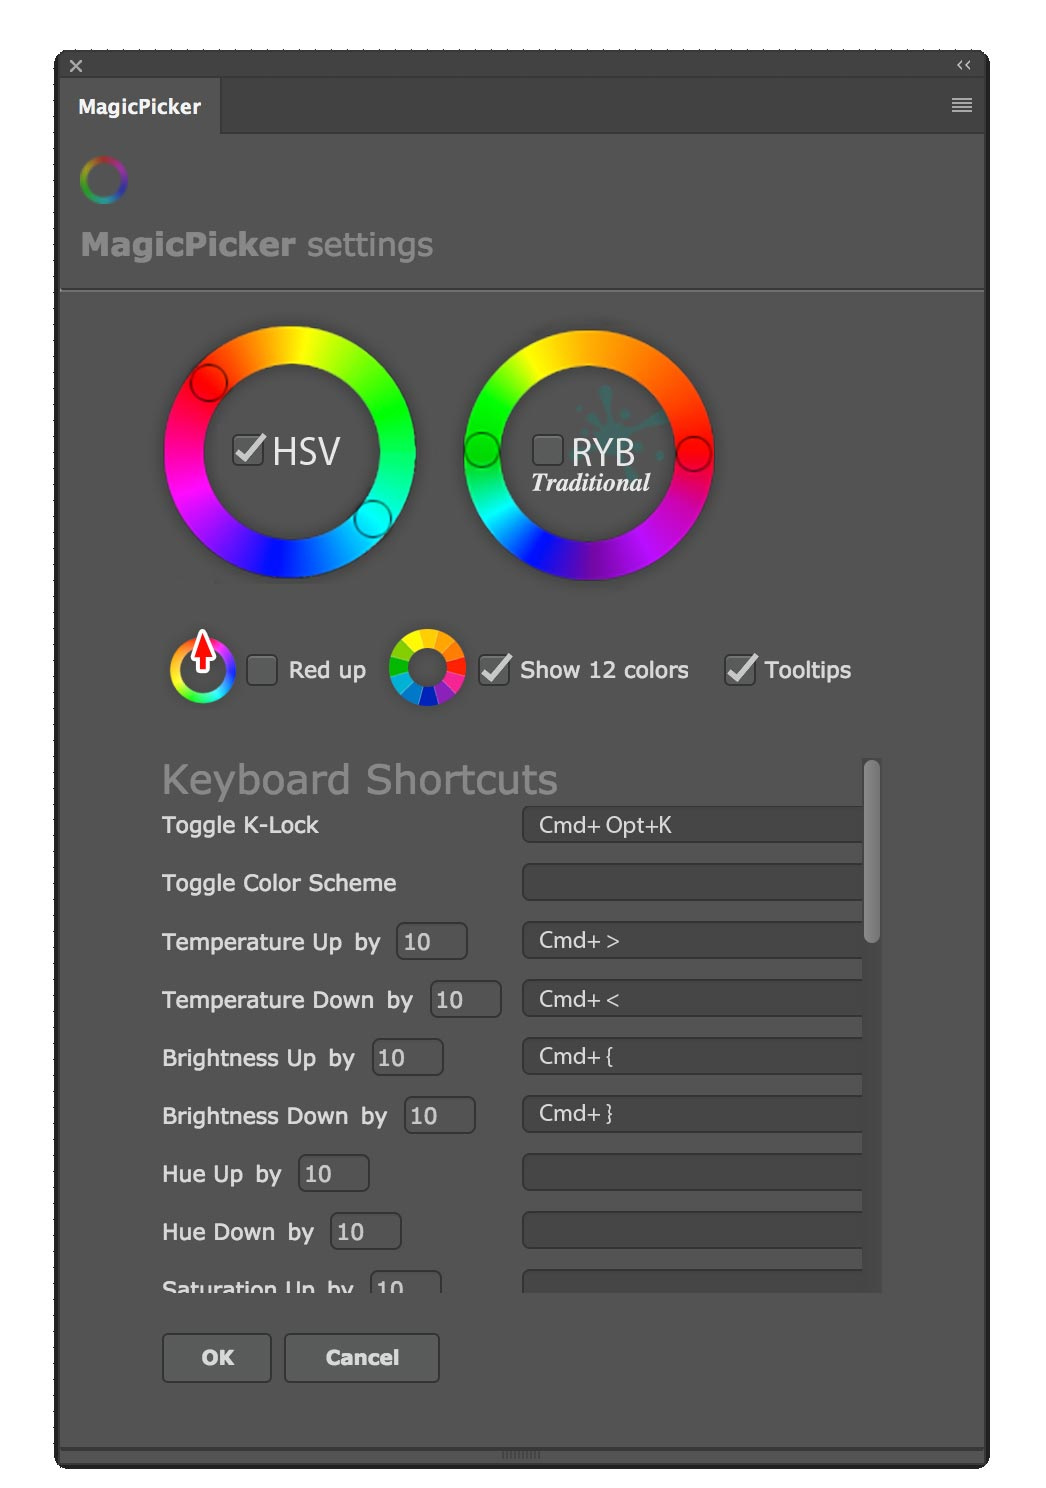 MagicPicker - assign keyboard shortcuts